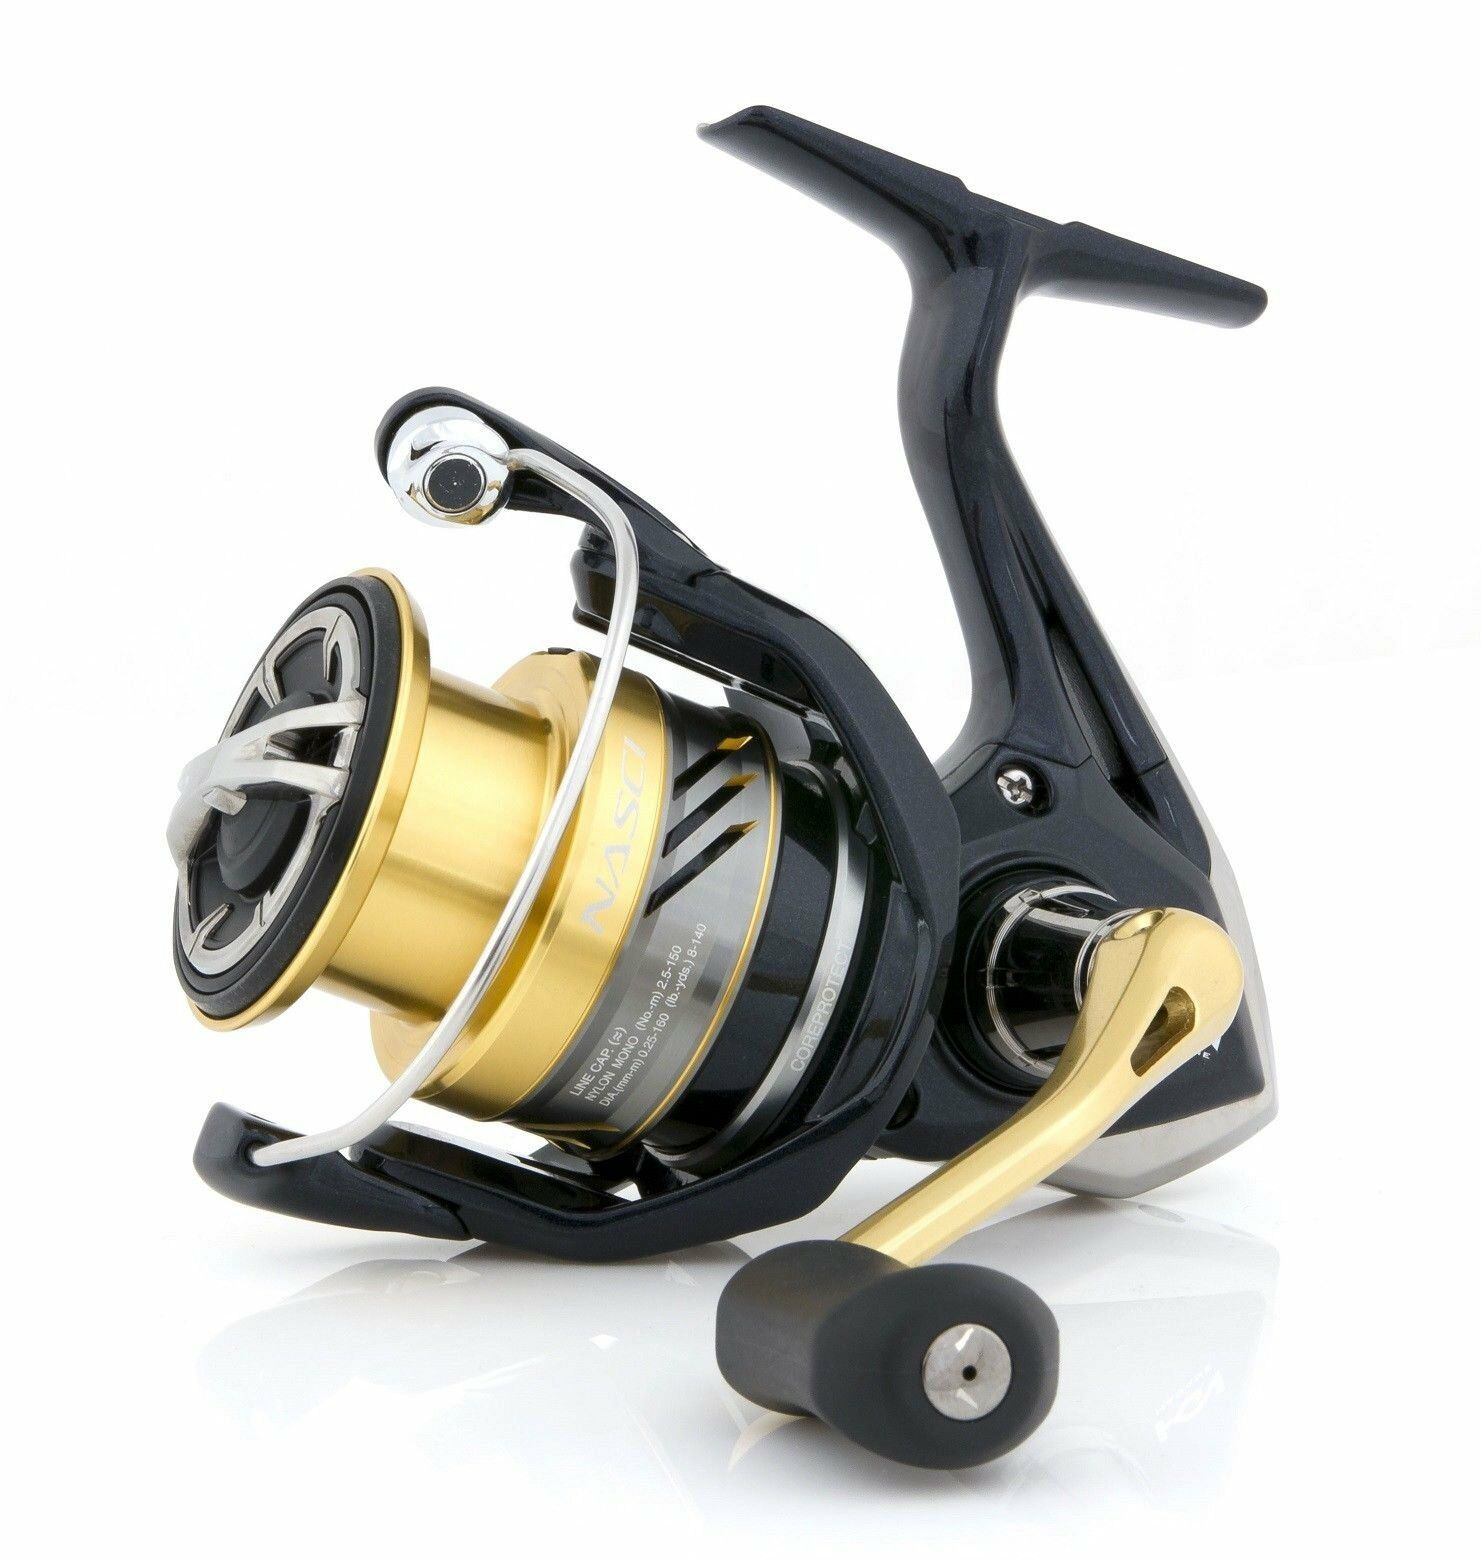 Shimano Nasci 1000 FB, Spinning Rolle Frontbremse, NAS1000FB